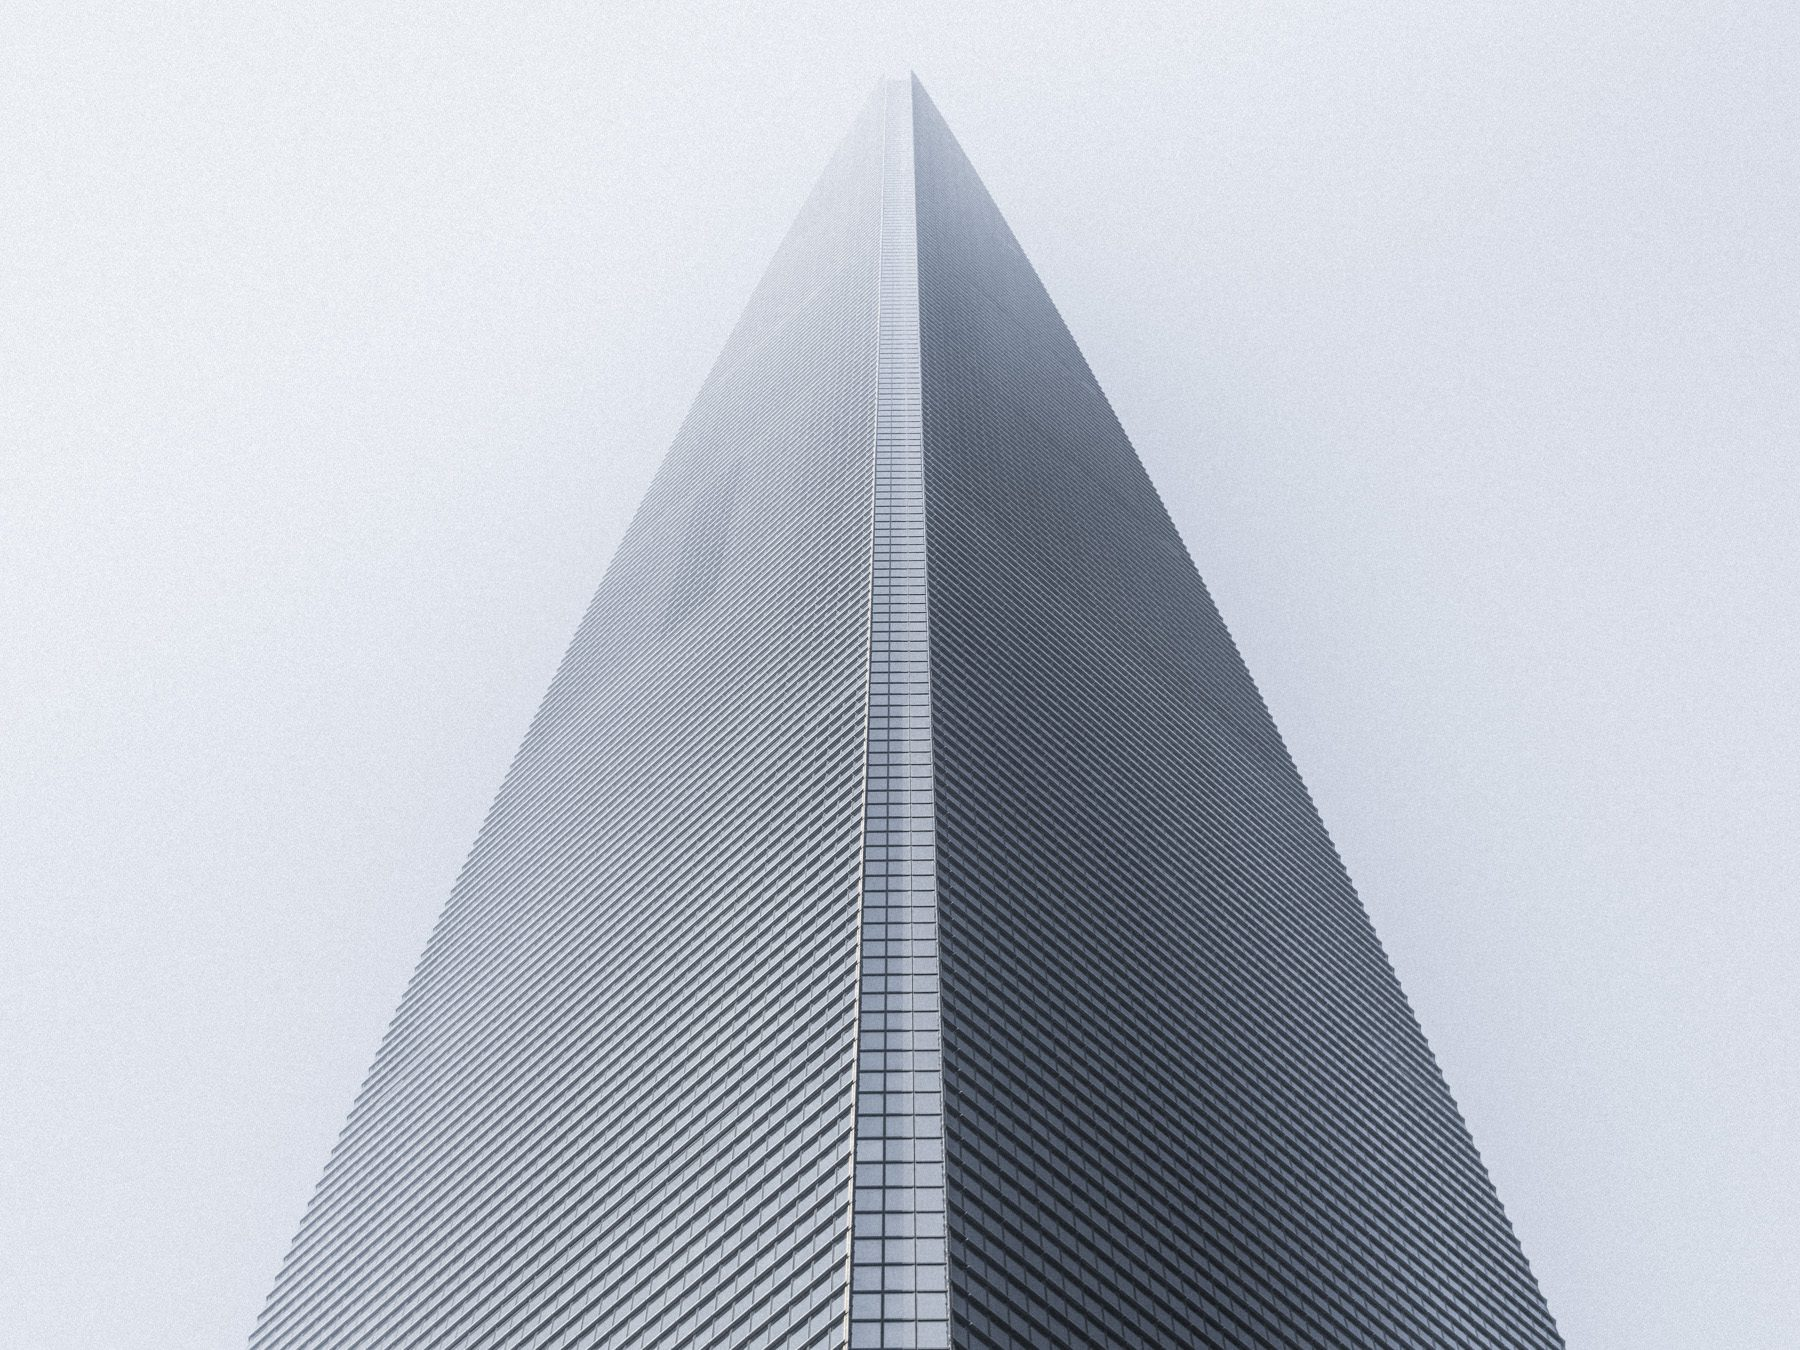 Architectural photography by Gavin Jowitt - Sydney Photographer